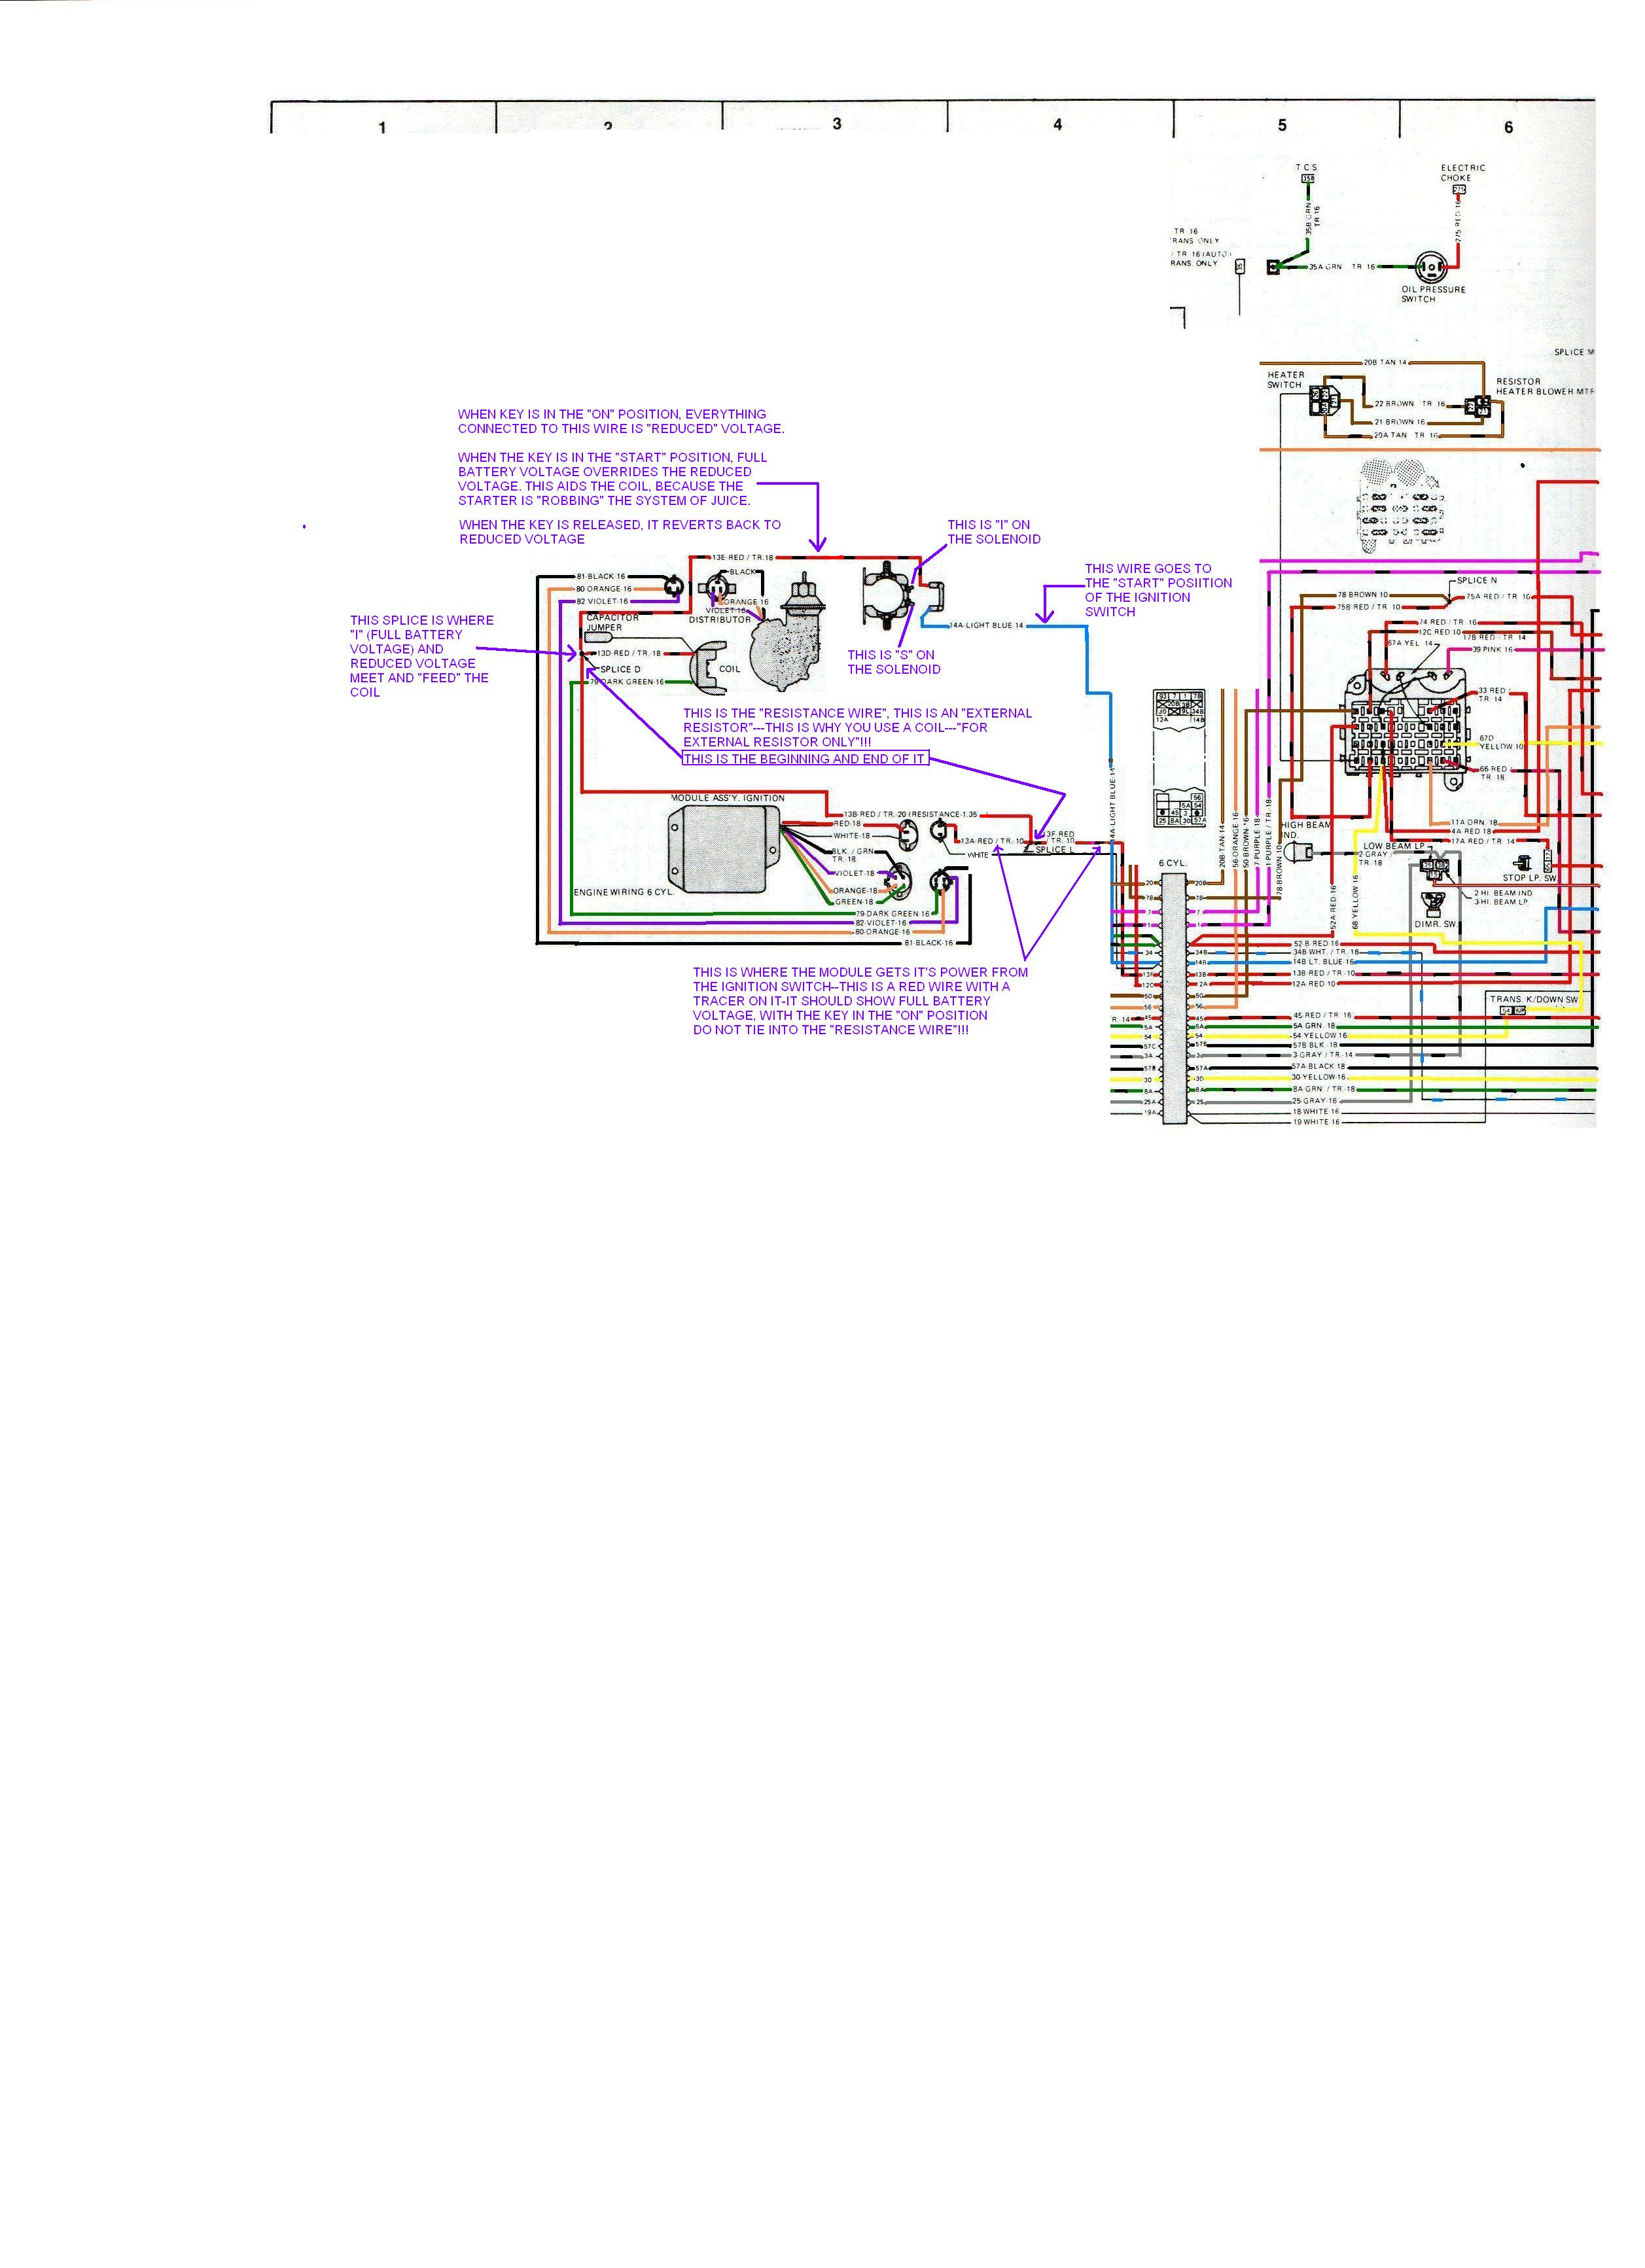 Module Wiring Diagram As Well Amc Ignition Module Wiring Diagram